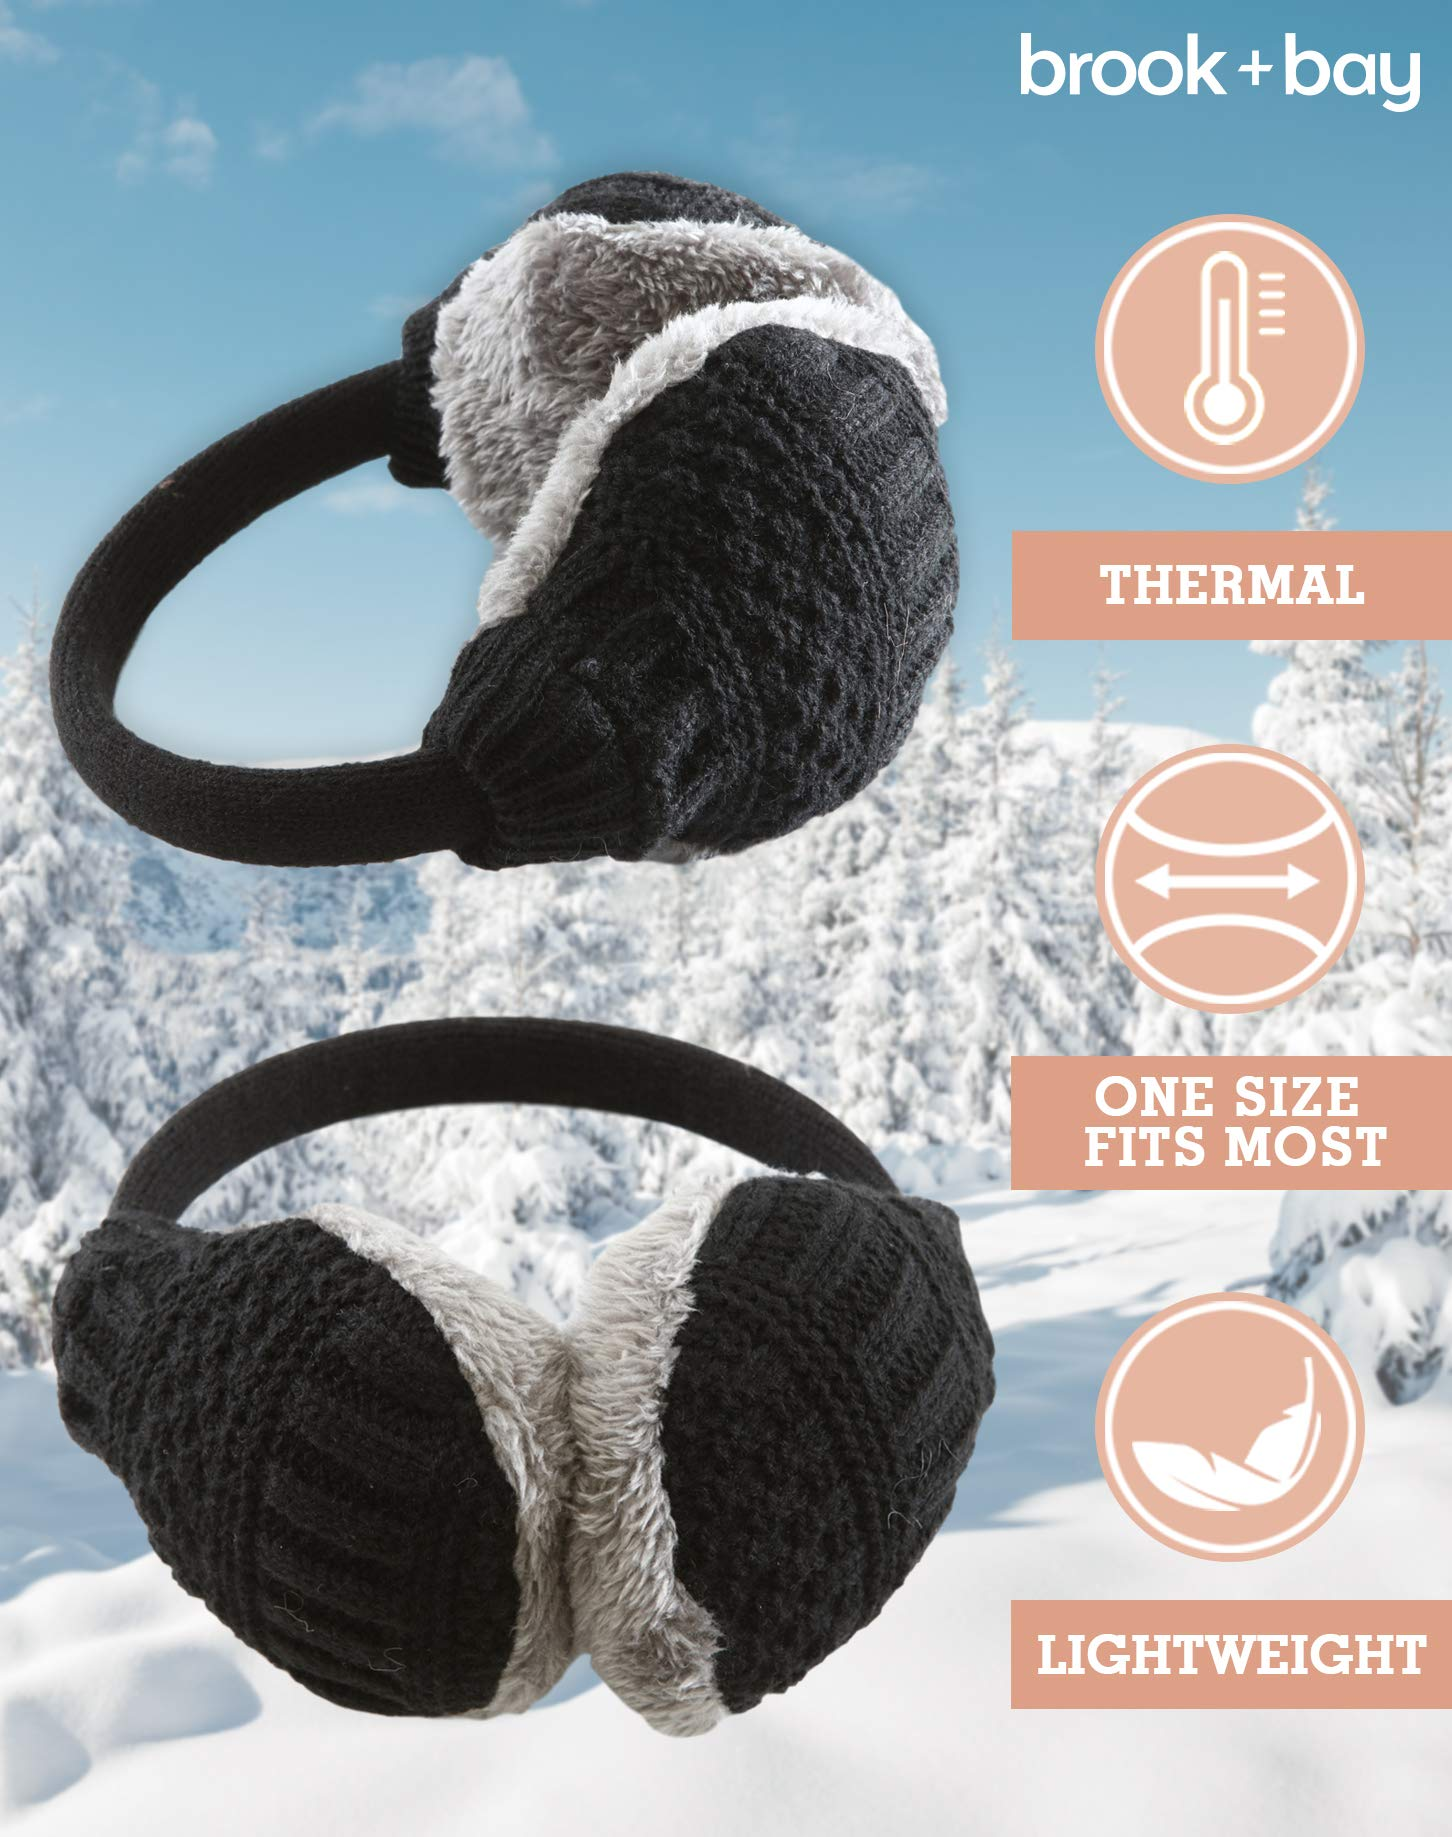 Womens Ear Muffs – Winter Ear Warmers/Covers – Cable Knit Furry Fleece Earmuffs for Cold Weather